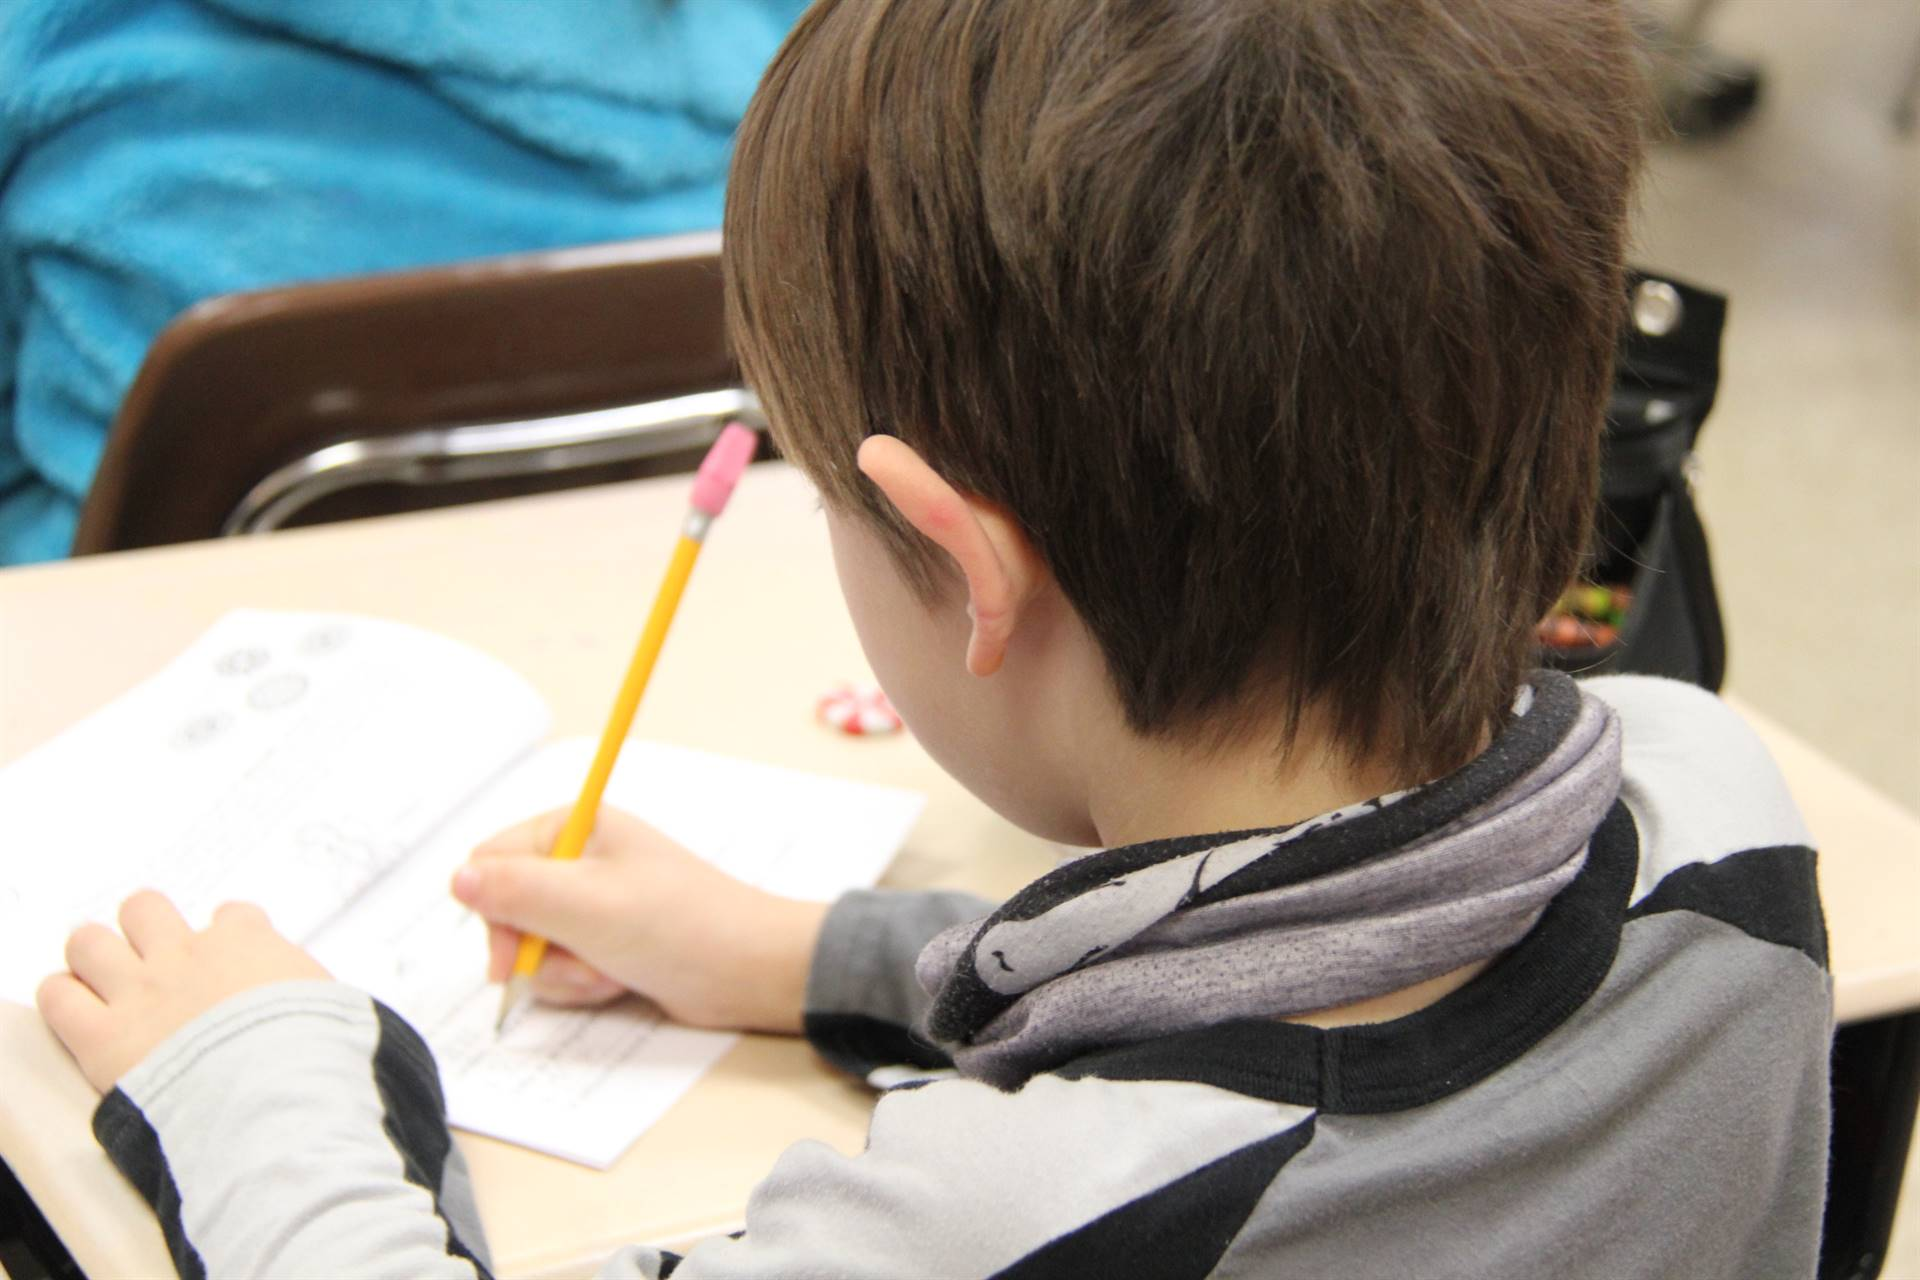 student writing on paper